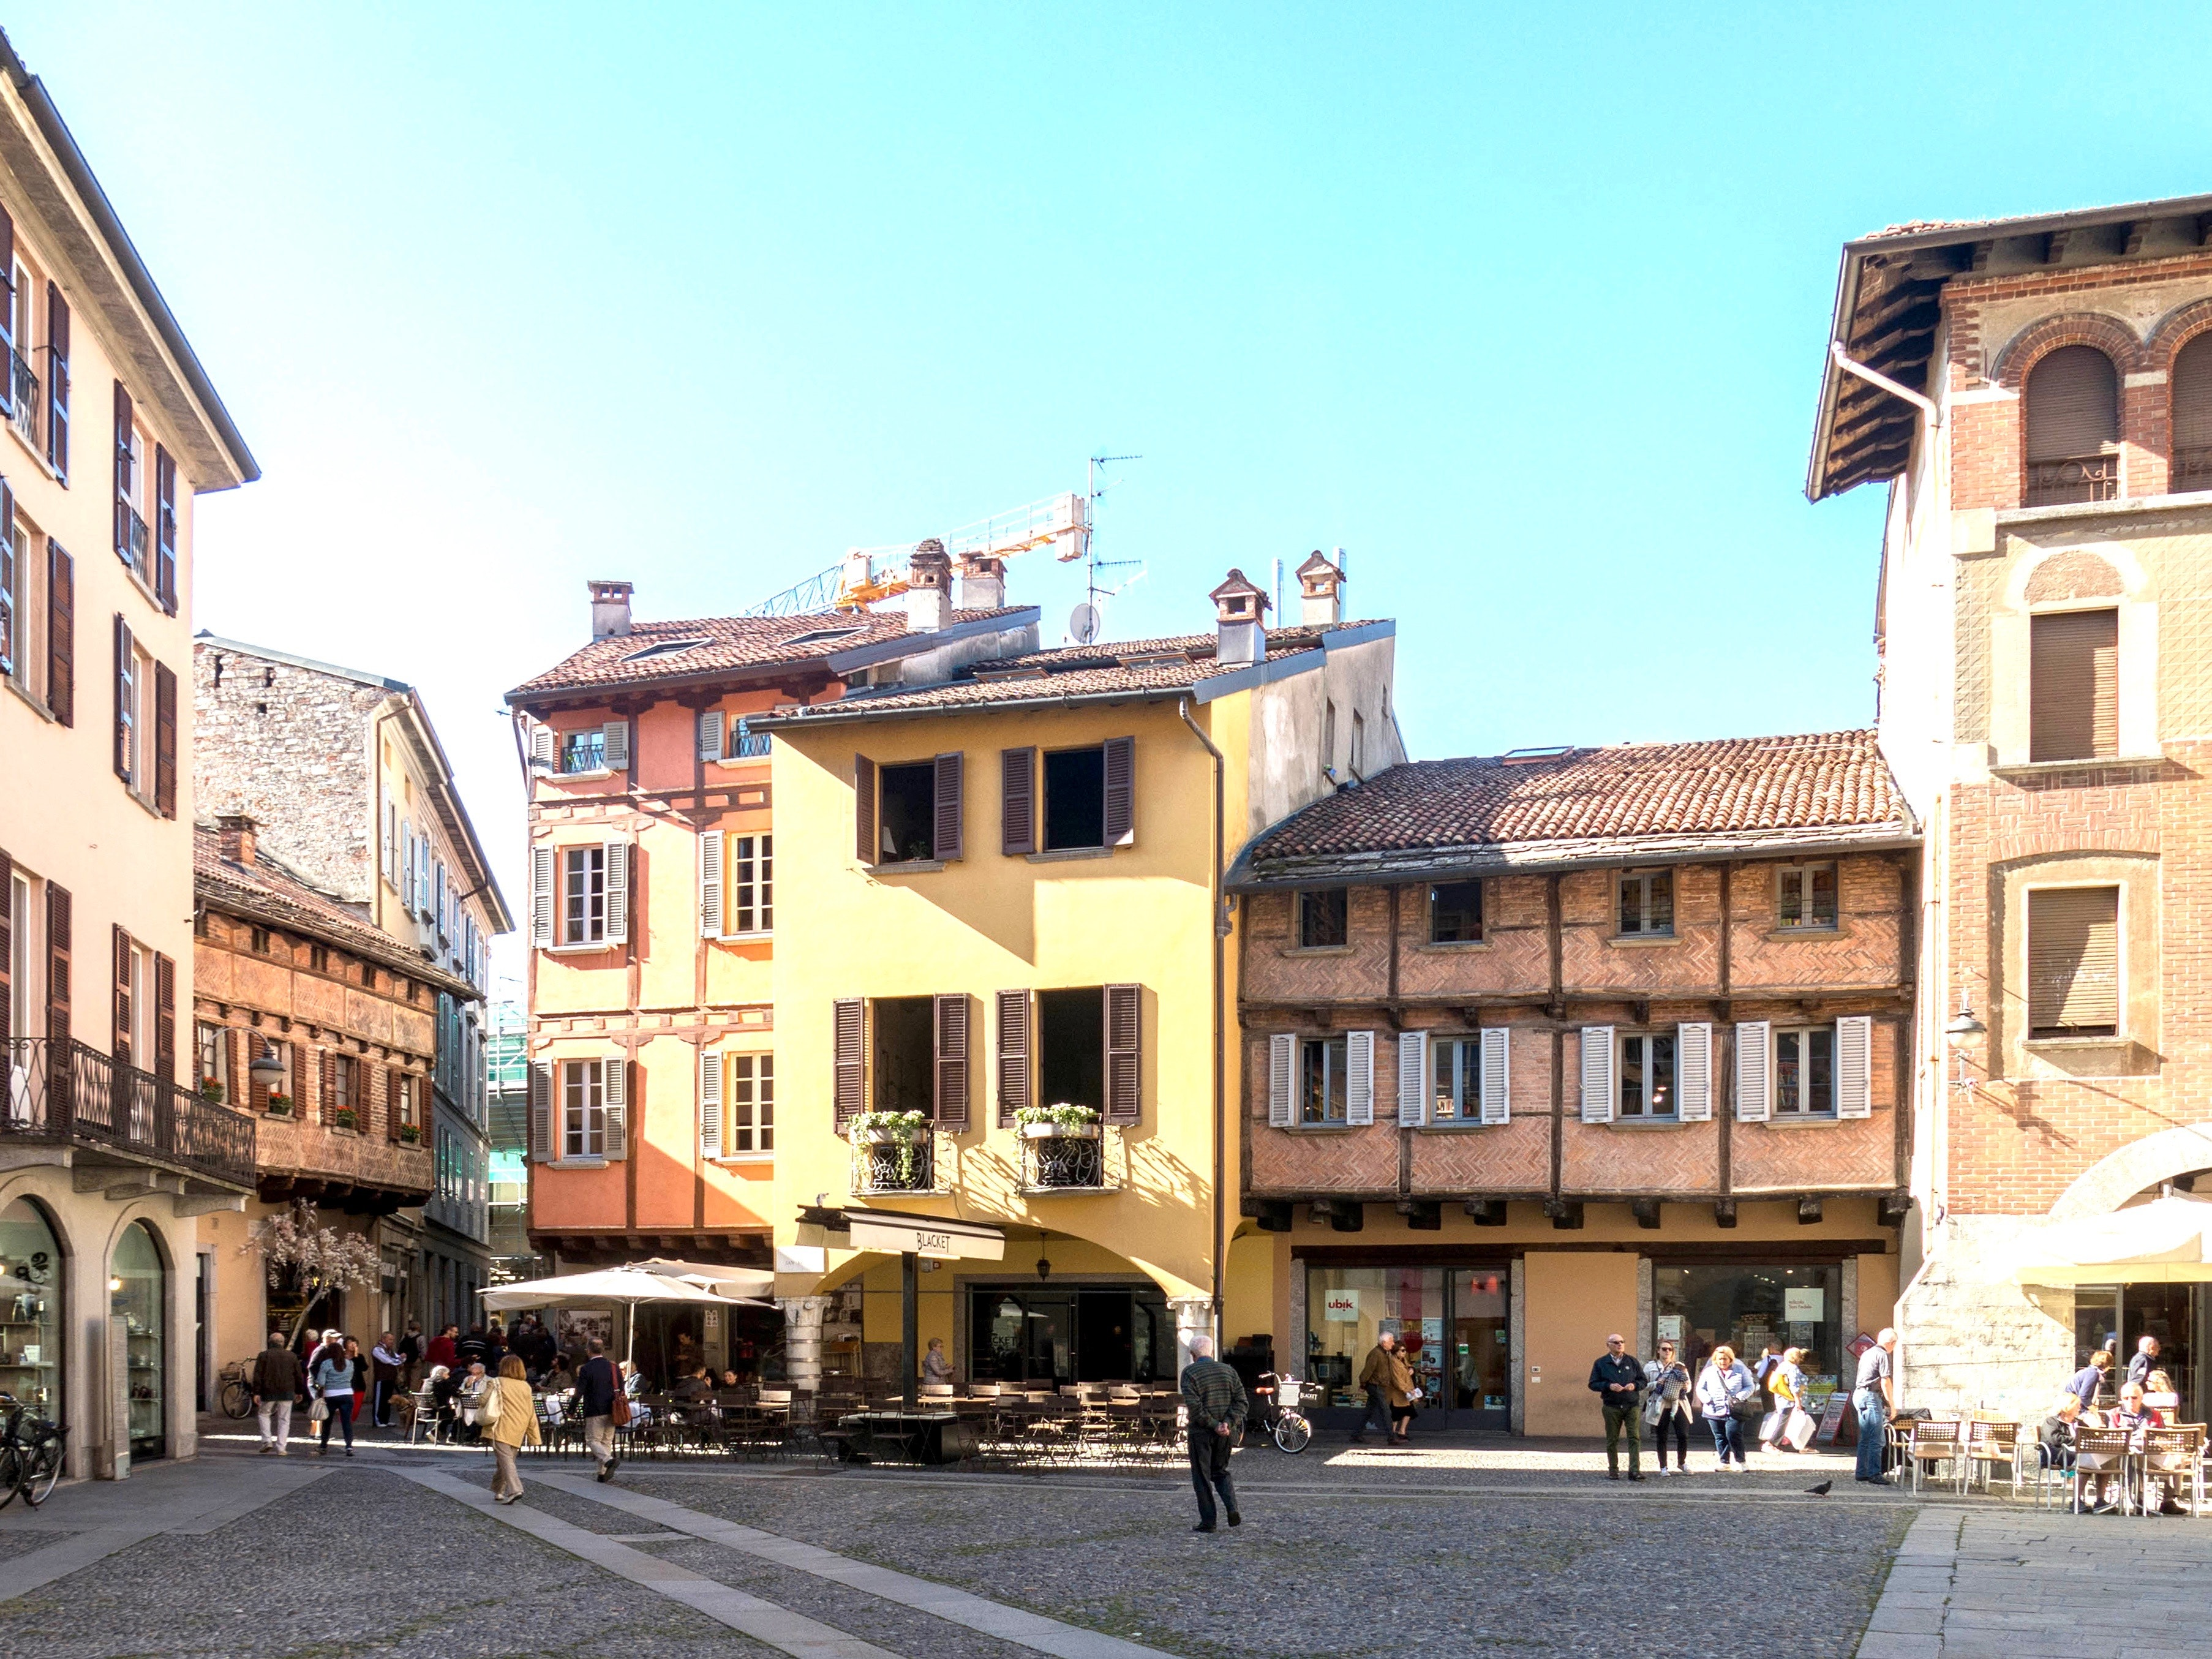 Neighbourhood living rooms – we can learn a lot from European town squares